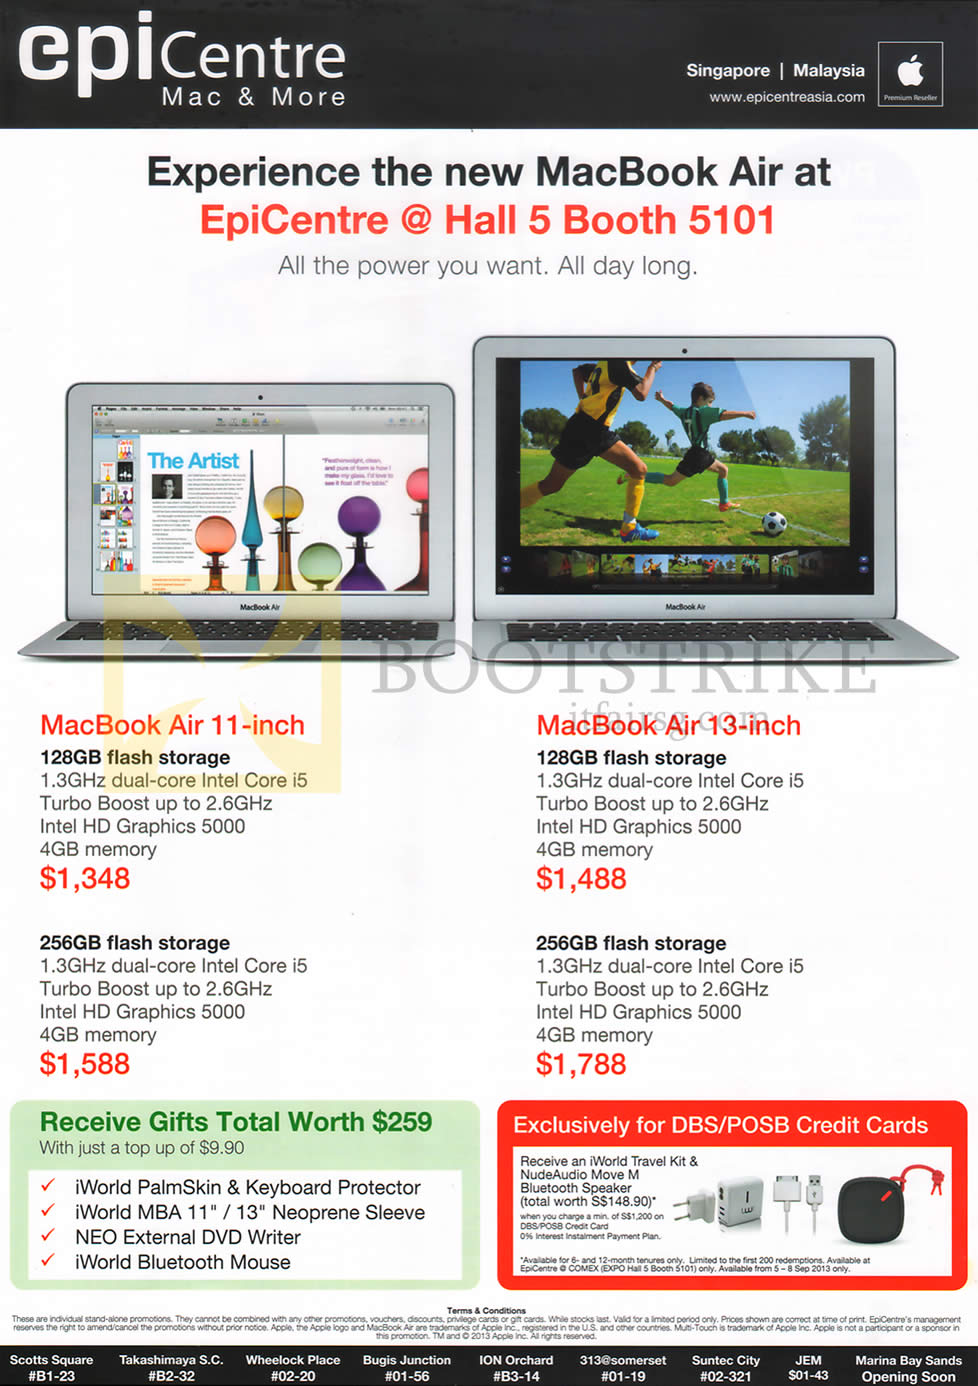 COMEX 2013 price list image brochure of Epicentre Apple MacBook Air Notebooks